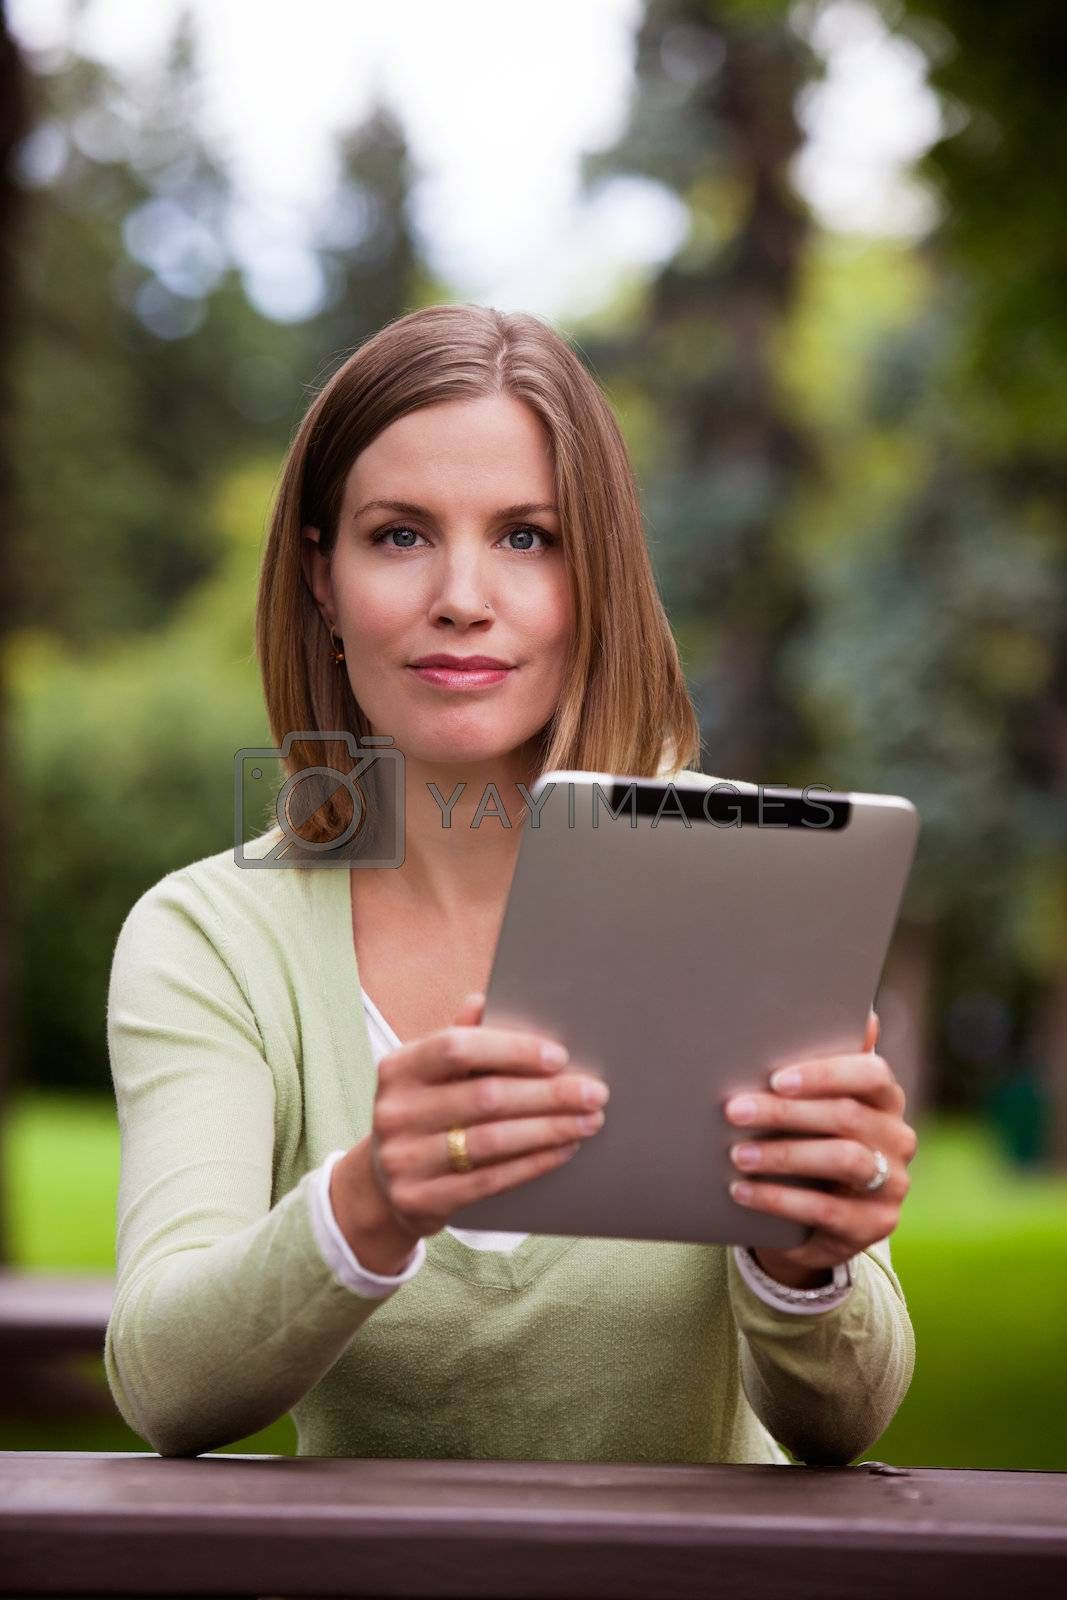 Portrait of attractive young woman in park holding digital tablet